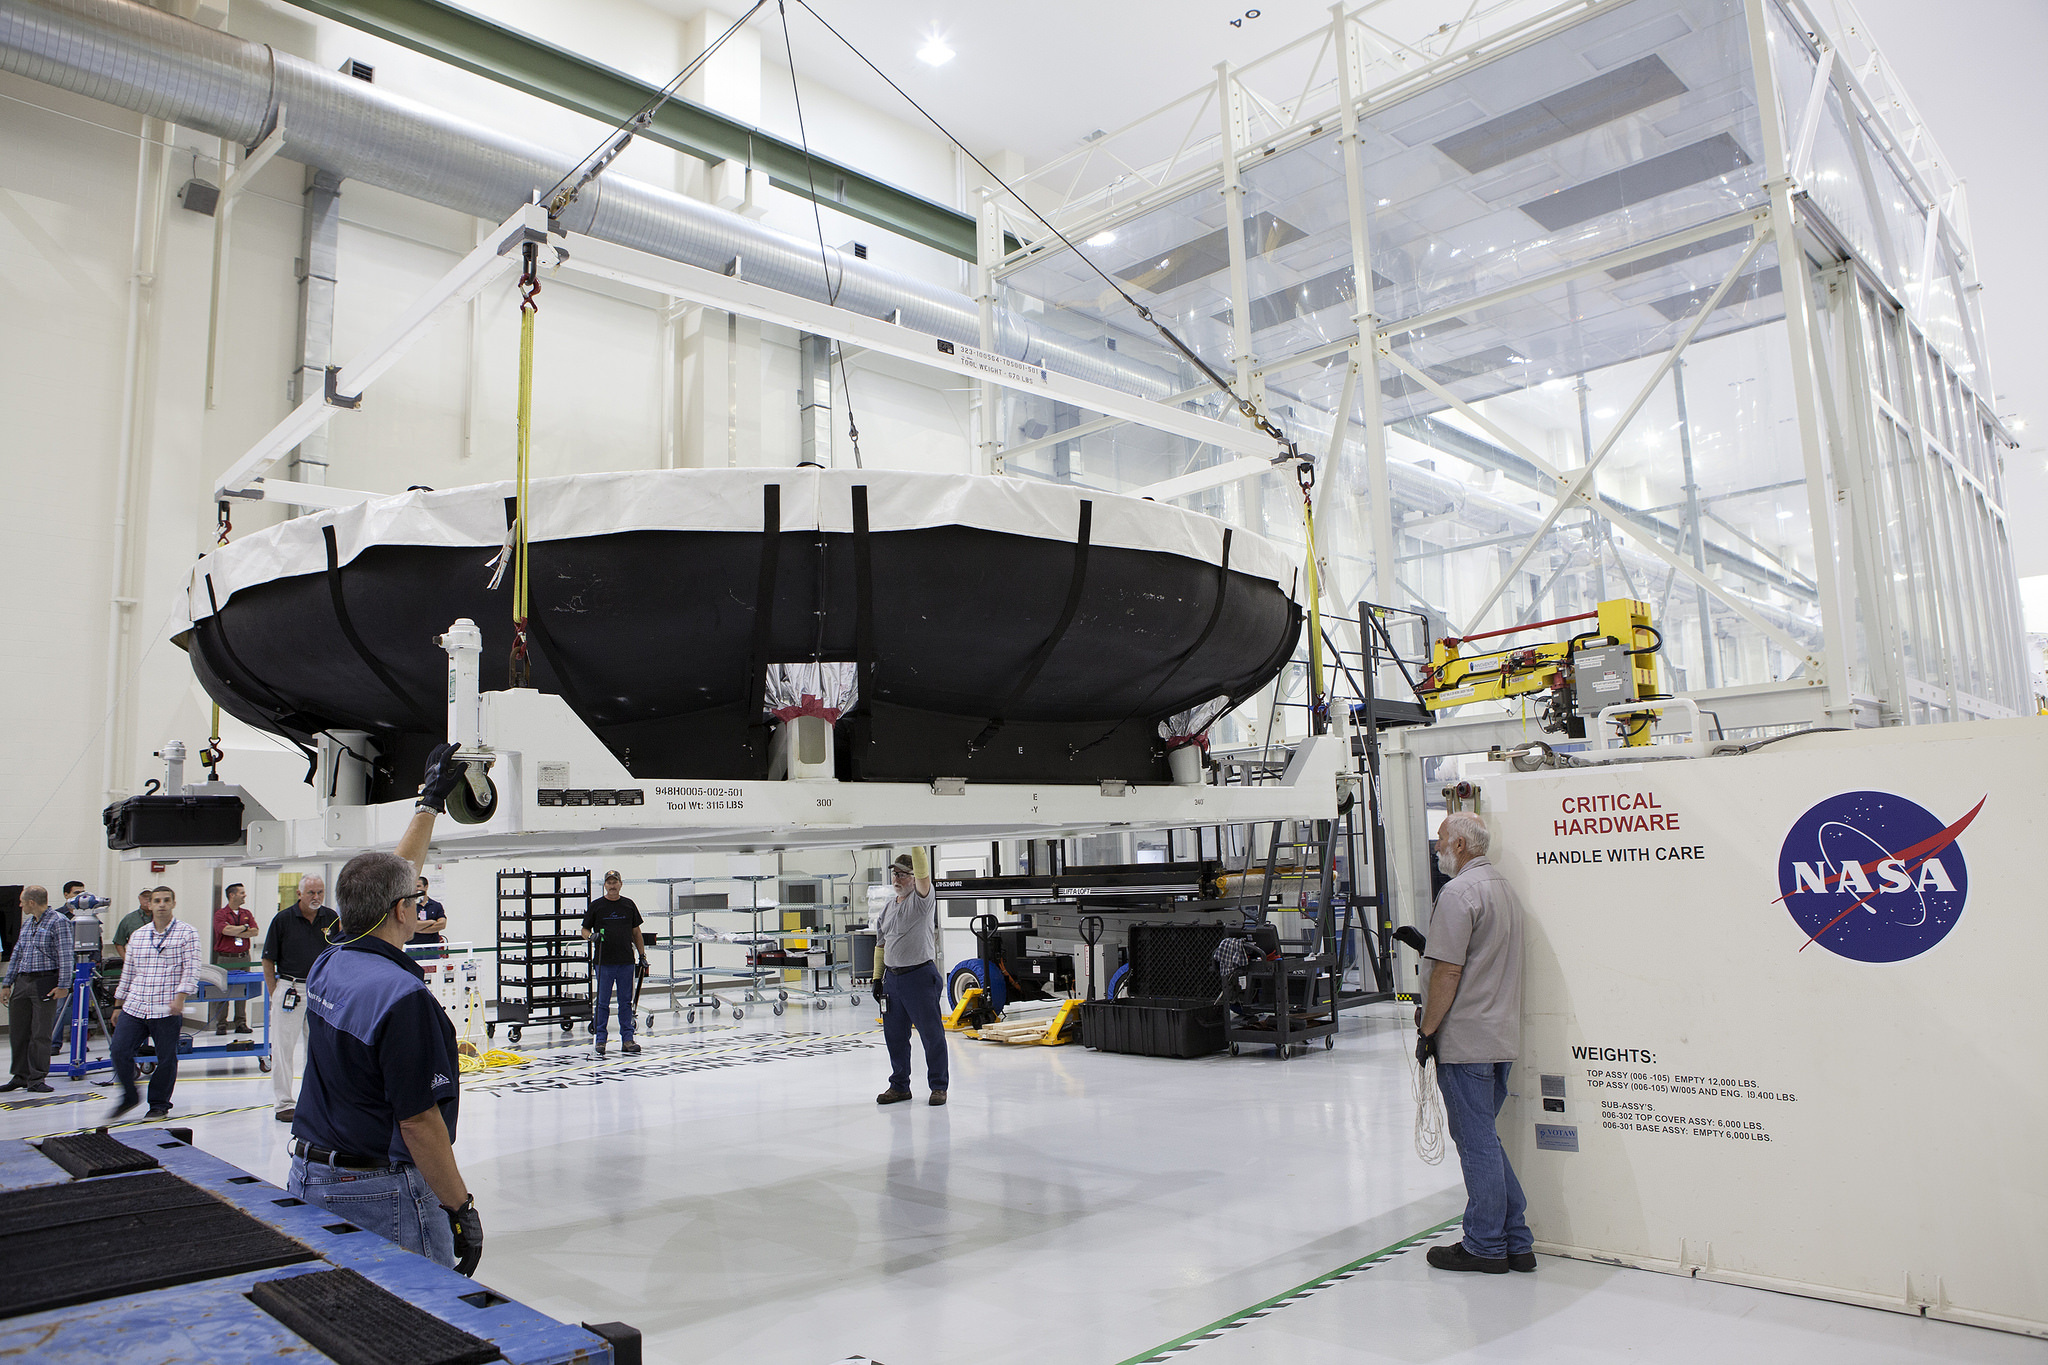 nasa orion heat shield - photo #11